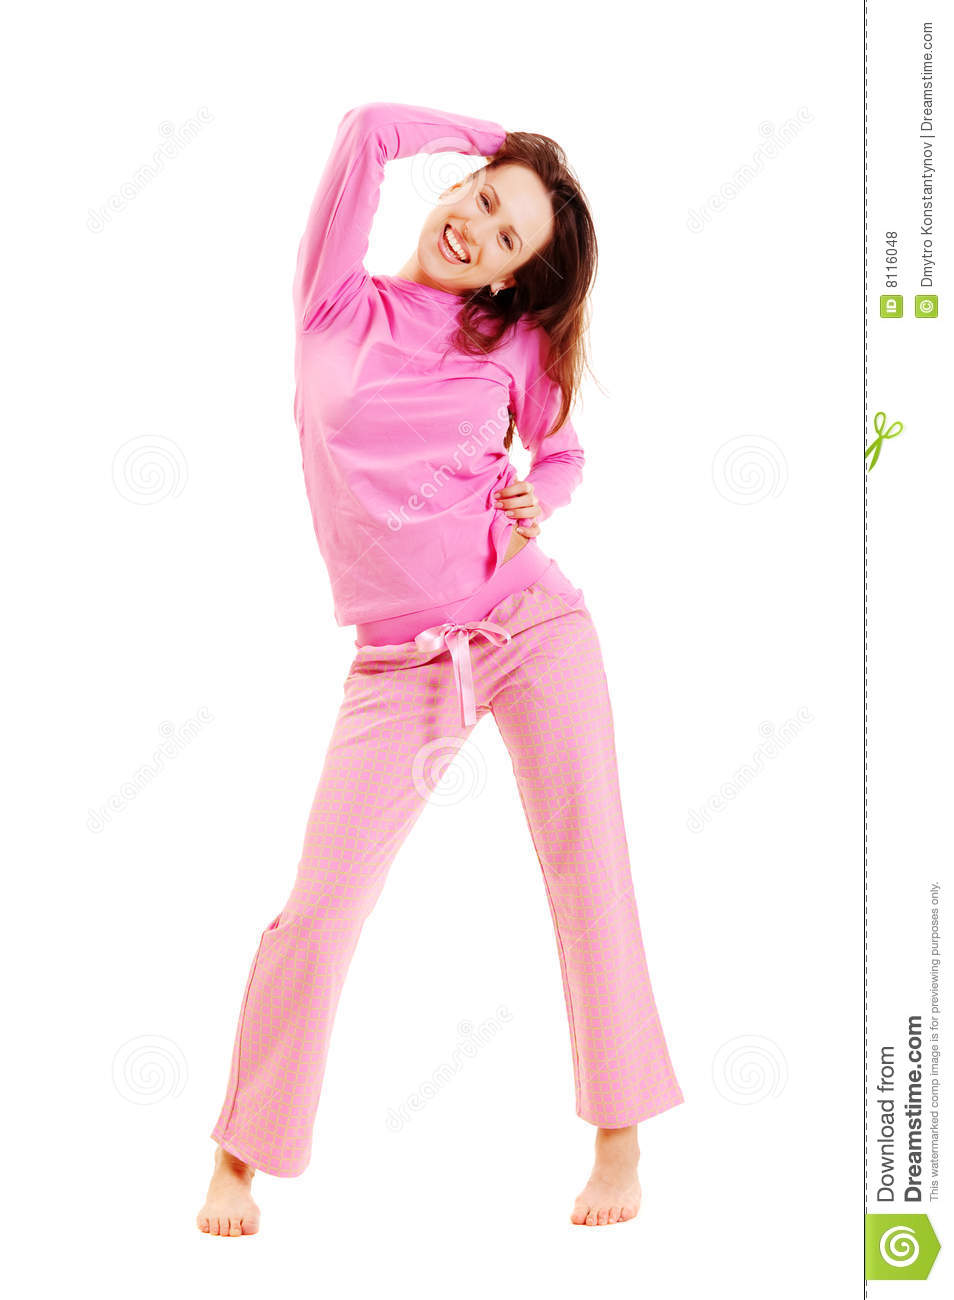 14815bf961da Cute Smiley Woman In Pink Pyjamas Stock Photo - Image of caucasian ...